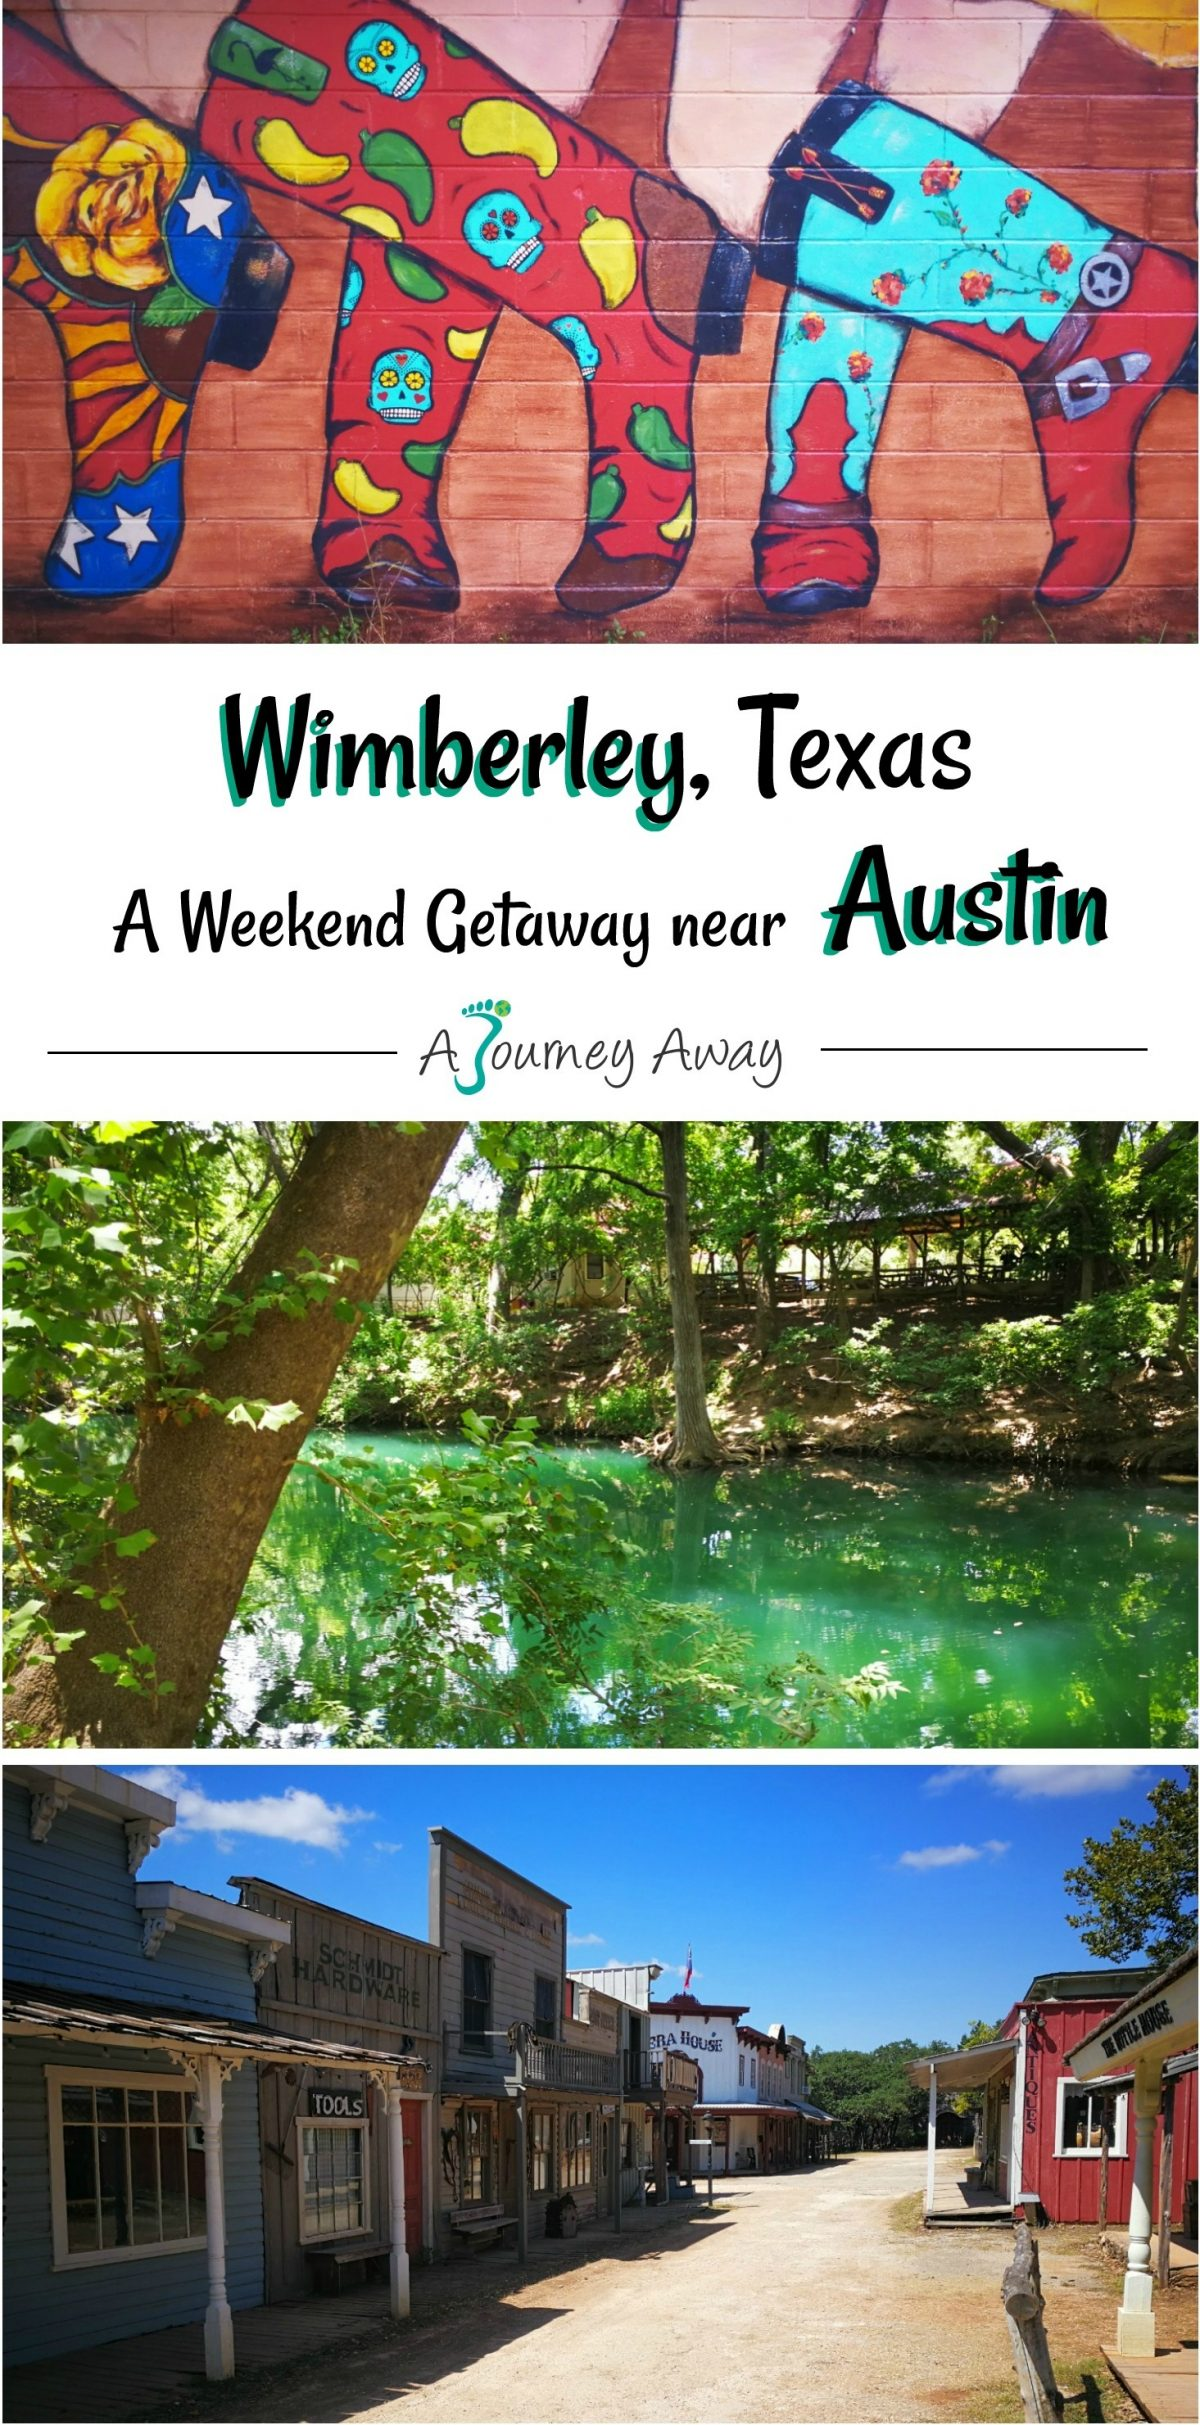 Wimberley, Texas: a weekend getaway near Austin | A Journey Away travel blog